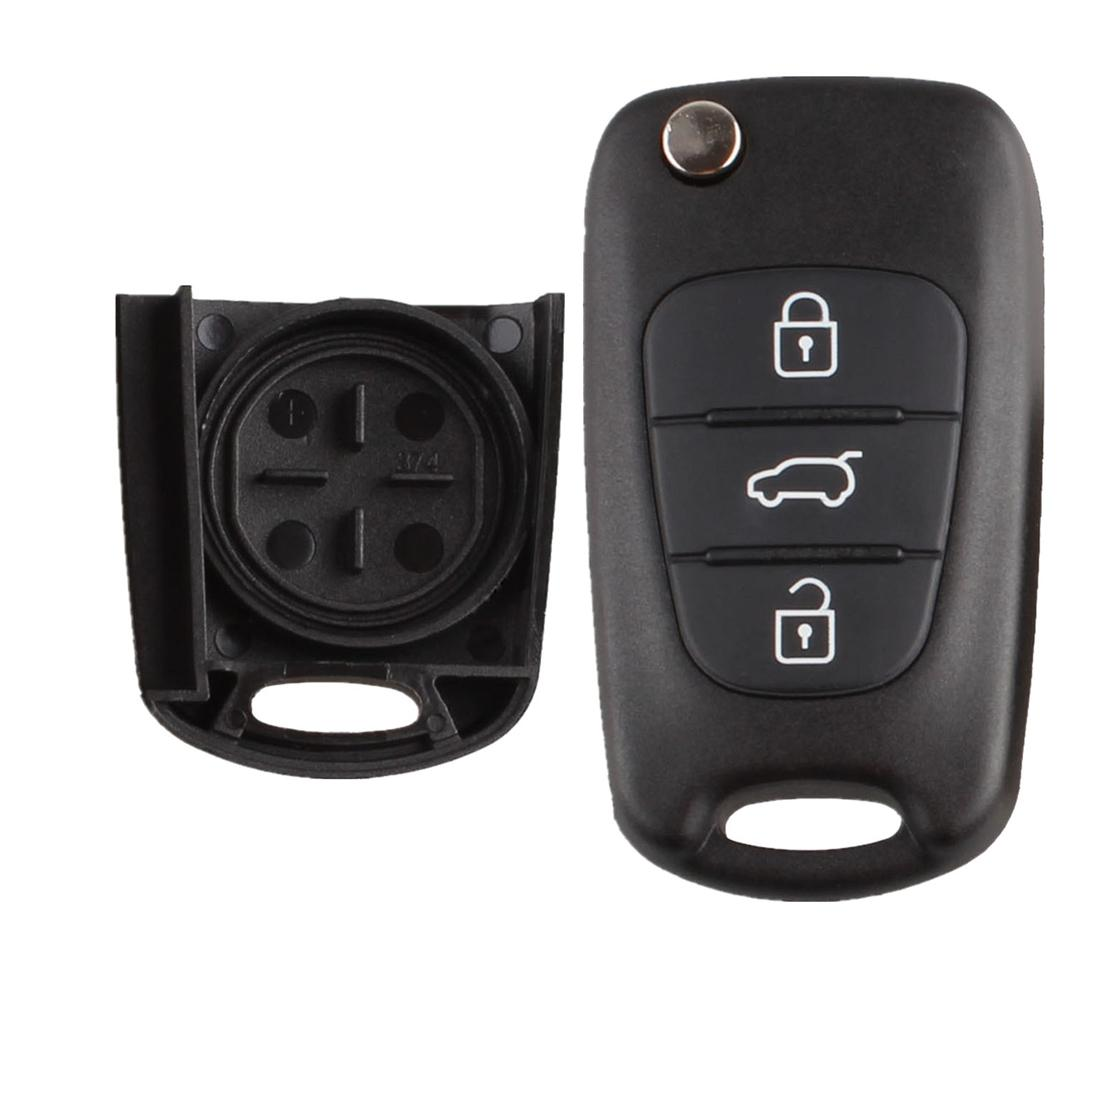 Dewtreetali Uncut Blade 3 Buttons Remote Folding Fild Key Shell Car-Styling Fob Cover Case For Hyundai I30 IX35 Kia K2 K5 car